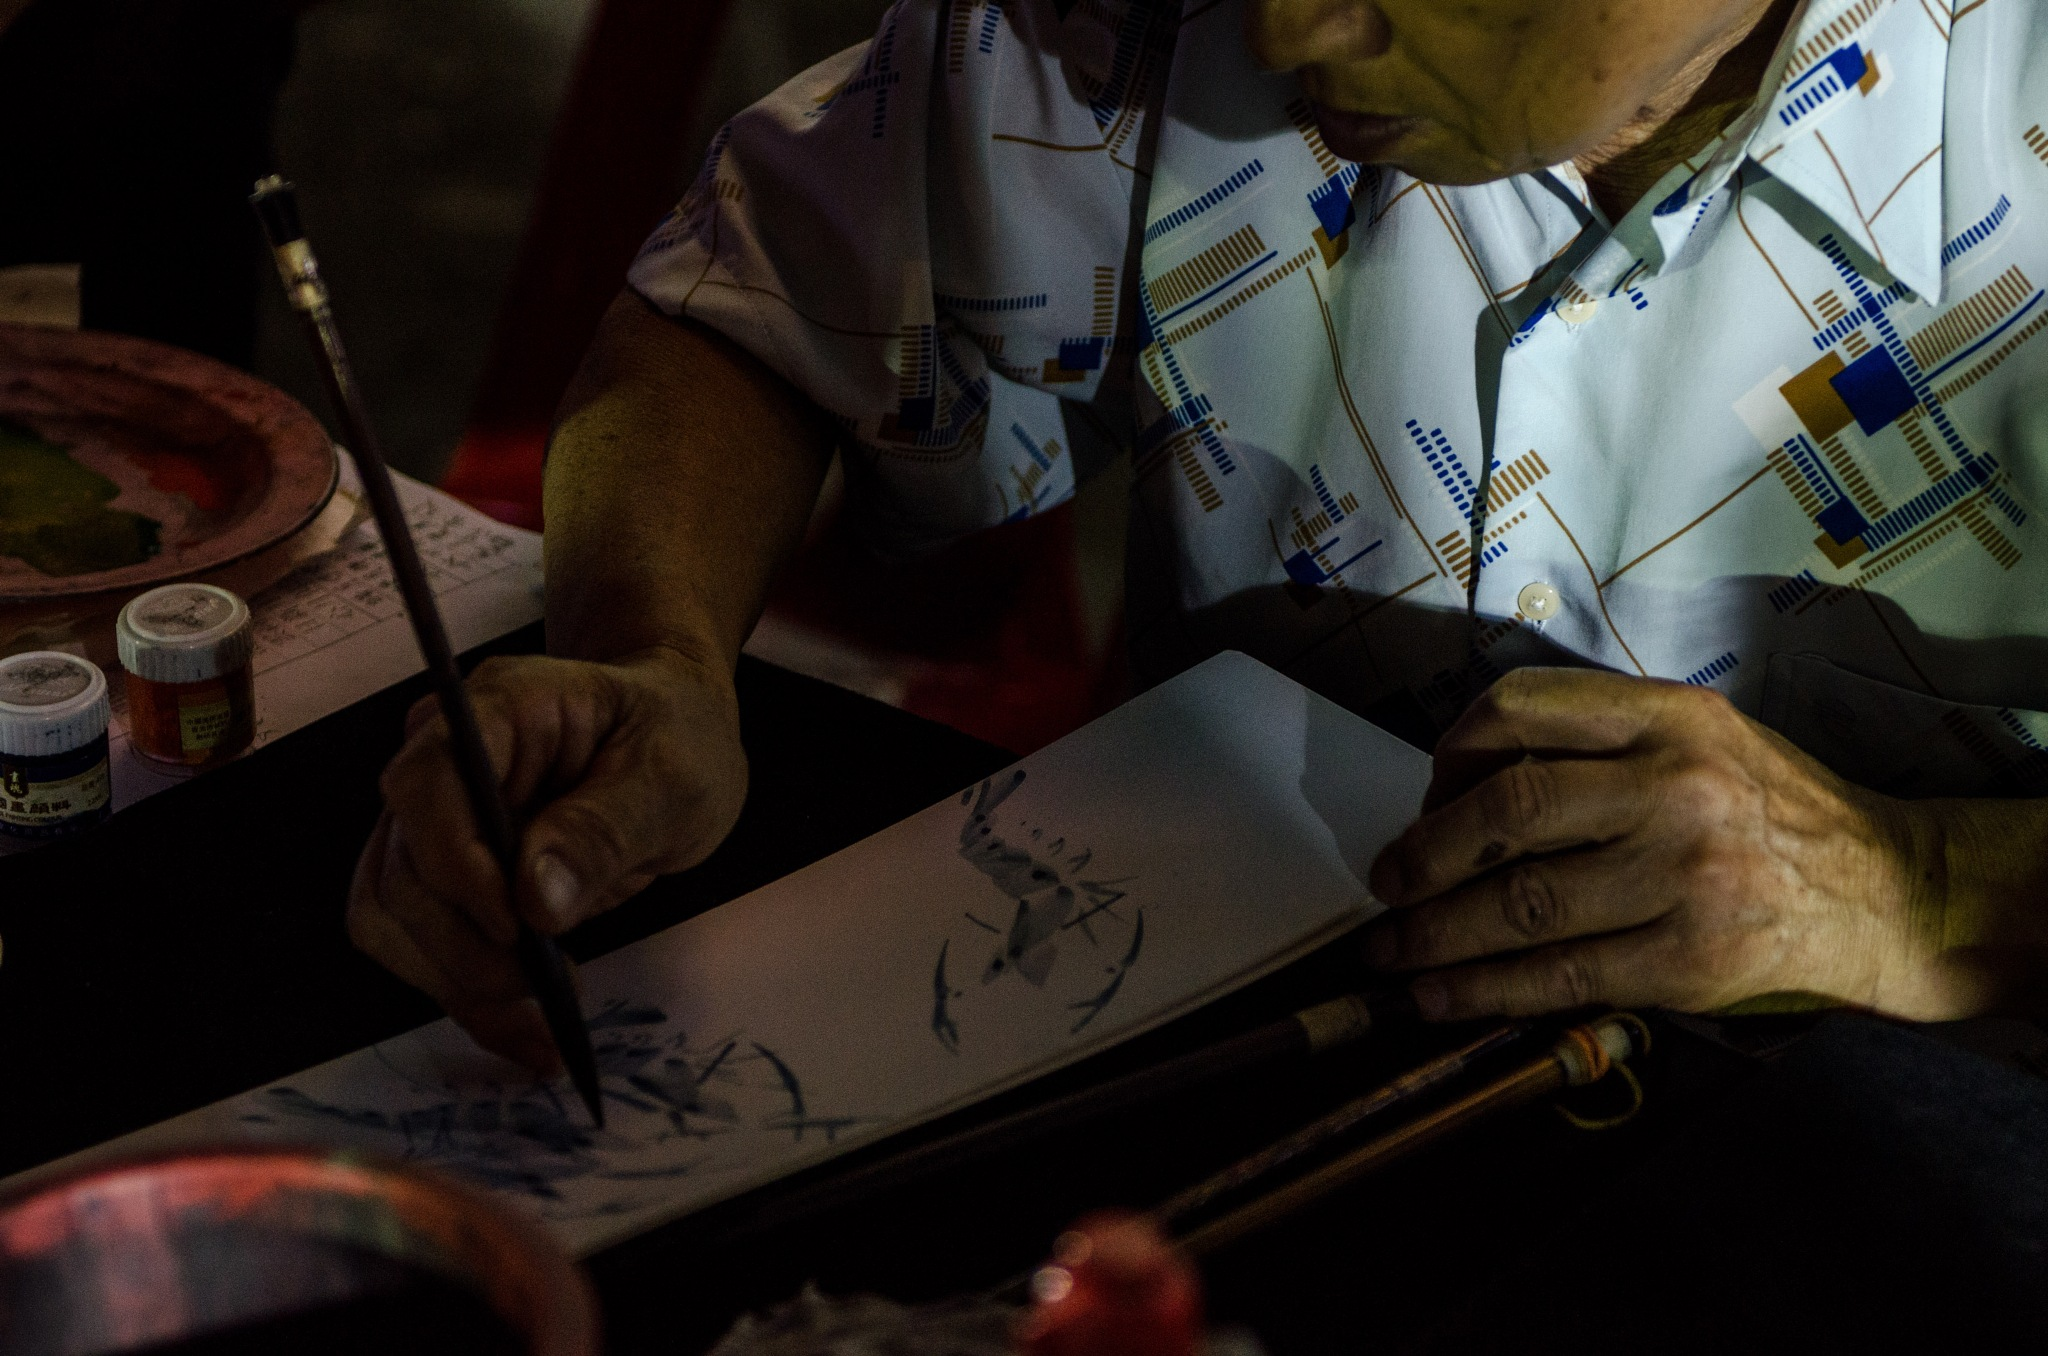 Calligraphy In The Dark  by Rie